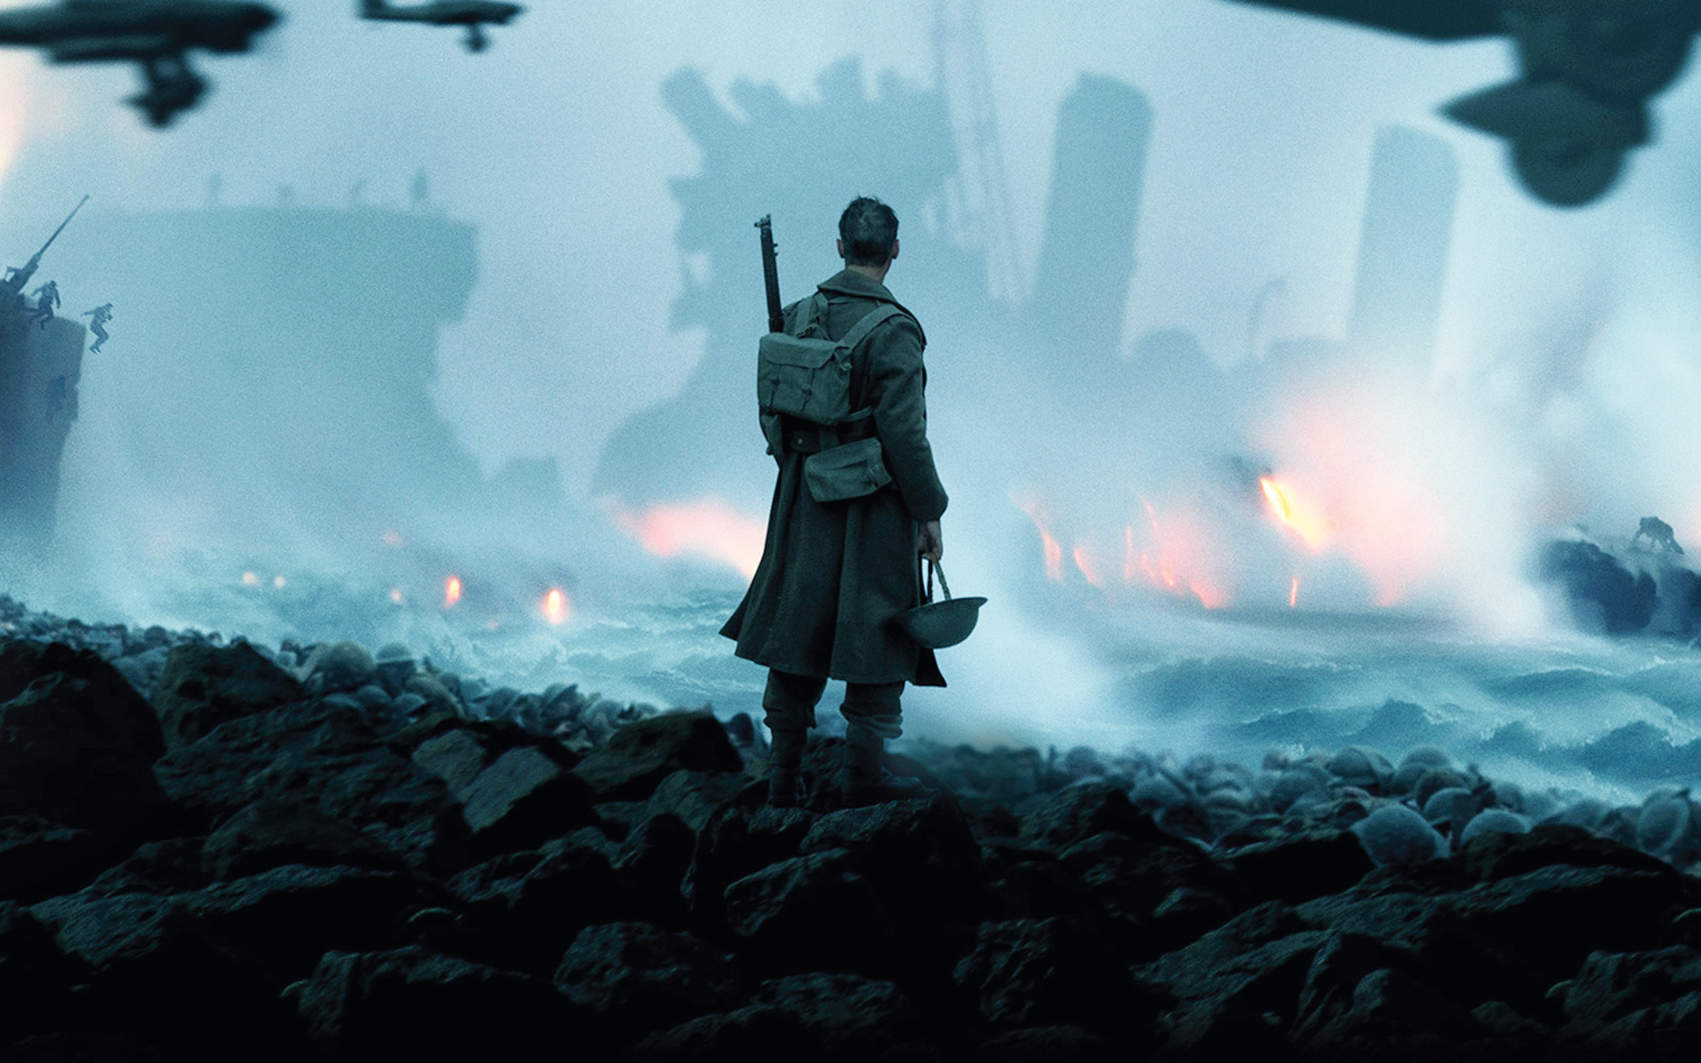 Dunkirk is an accomplished, expressive war film without the blood and guts